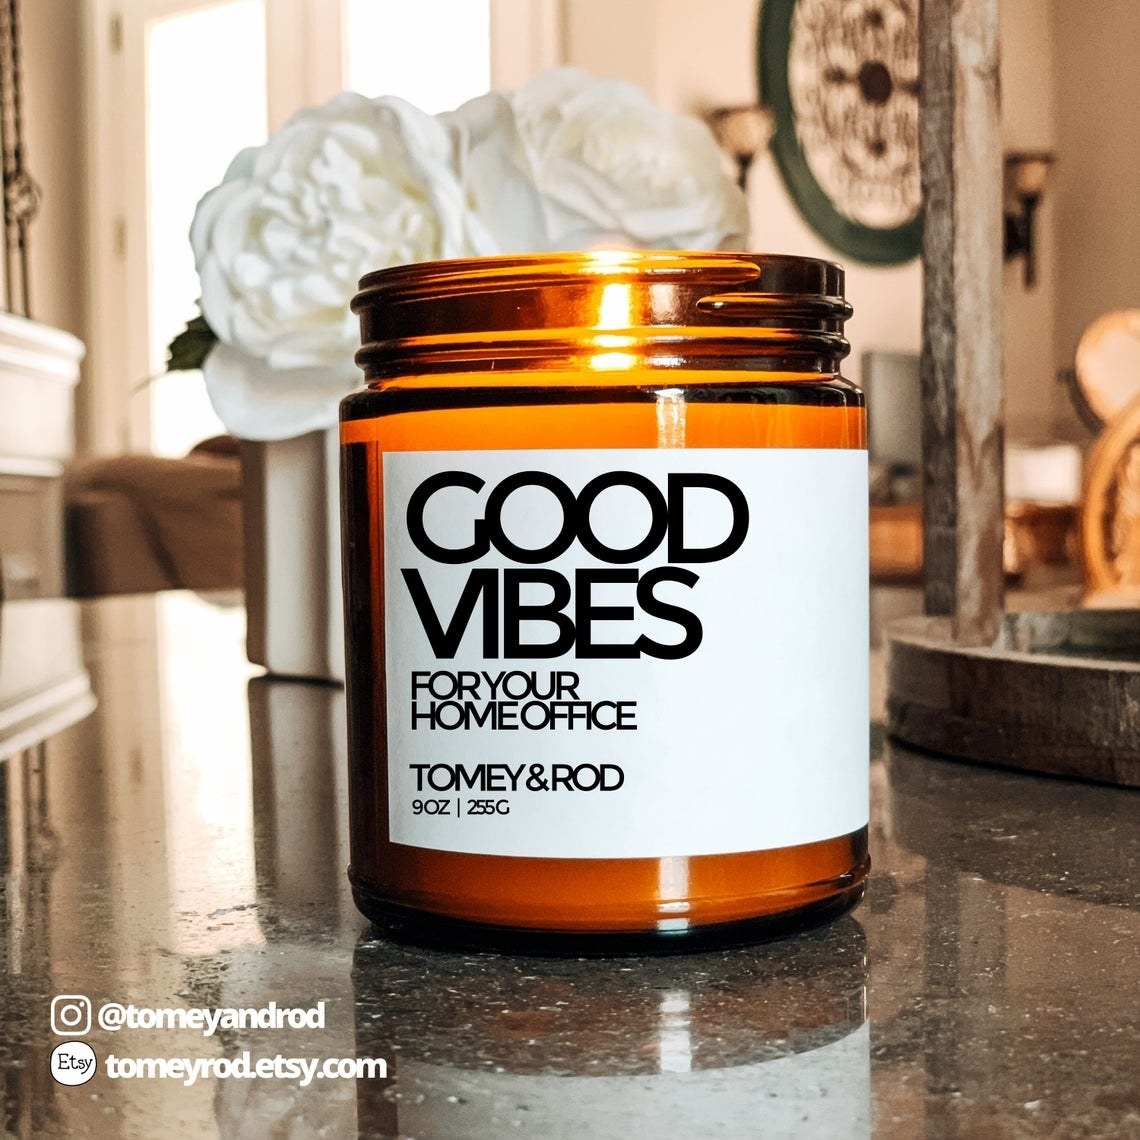 The Good Vibes for your Home Office candle